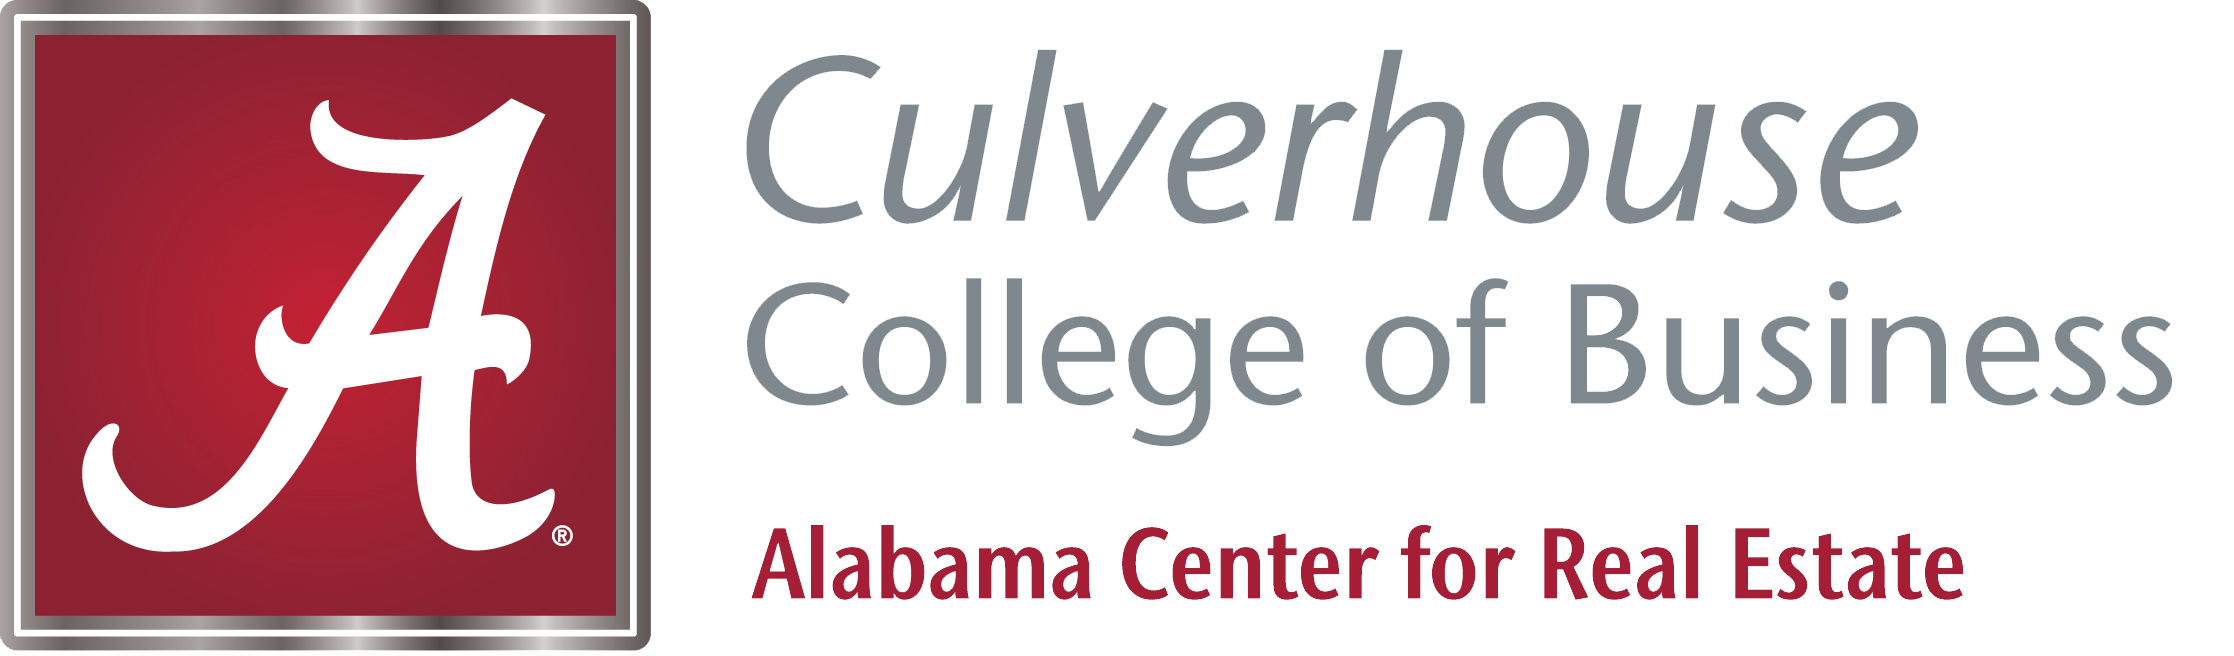 Culverhouse College of Business